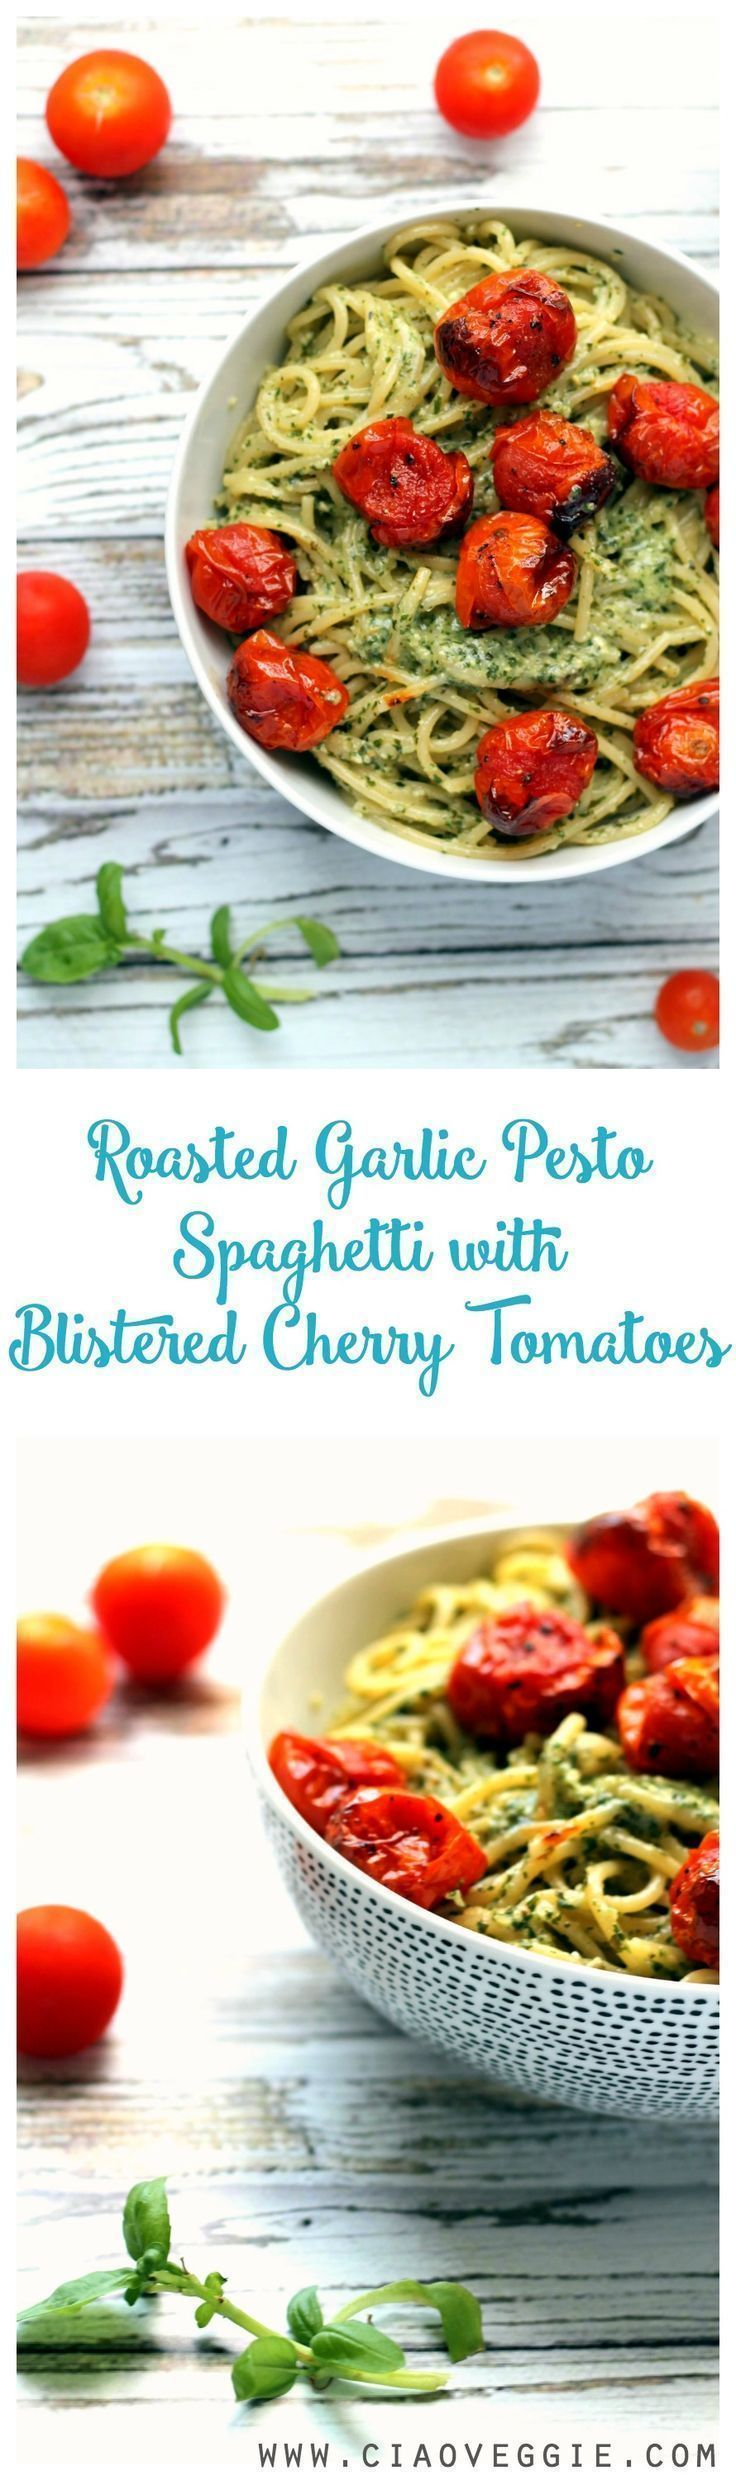 A tasty double garlic pesto spaghetti topped with sweet, jammy blistered cherry tomatoes. This is simple to prepare and will soon become your favorite pasta dish! Naturally vegan, can be made gluten free by using zoodles / courgetti!